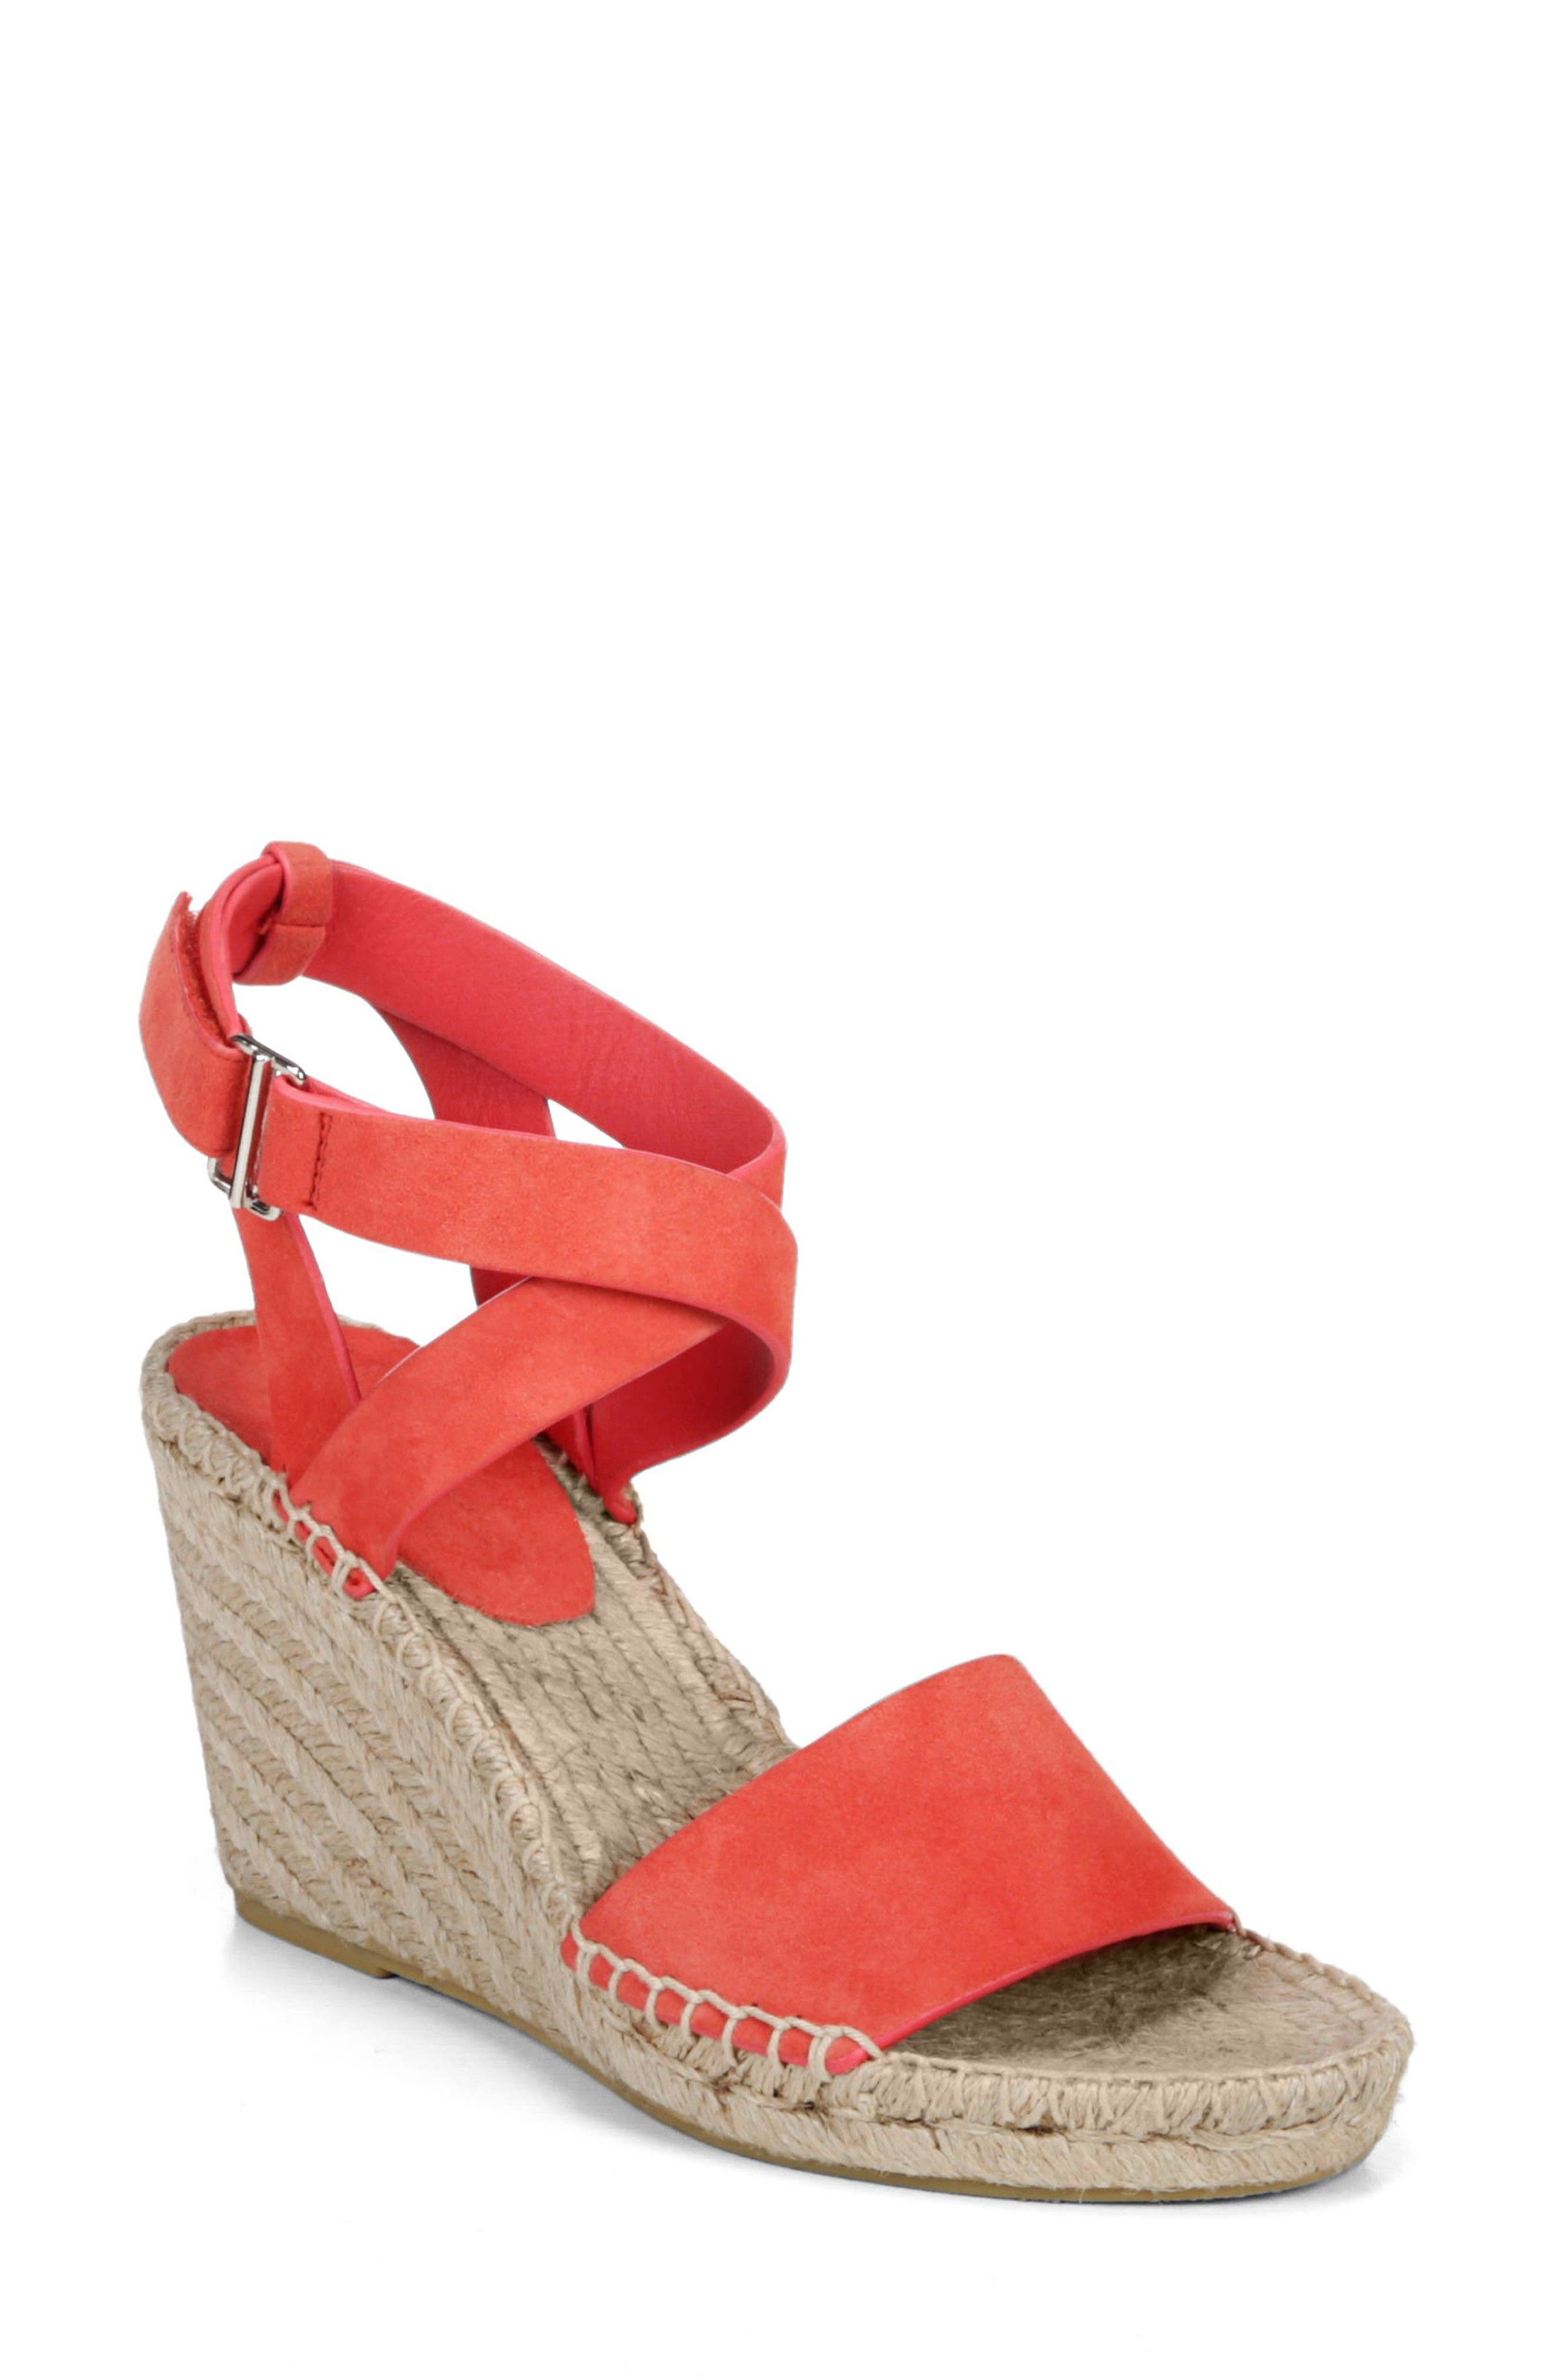 Nevada Espadrille Wedge Sandal,                         Main,                         color, Poppy Red Suede